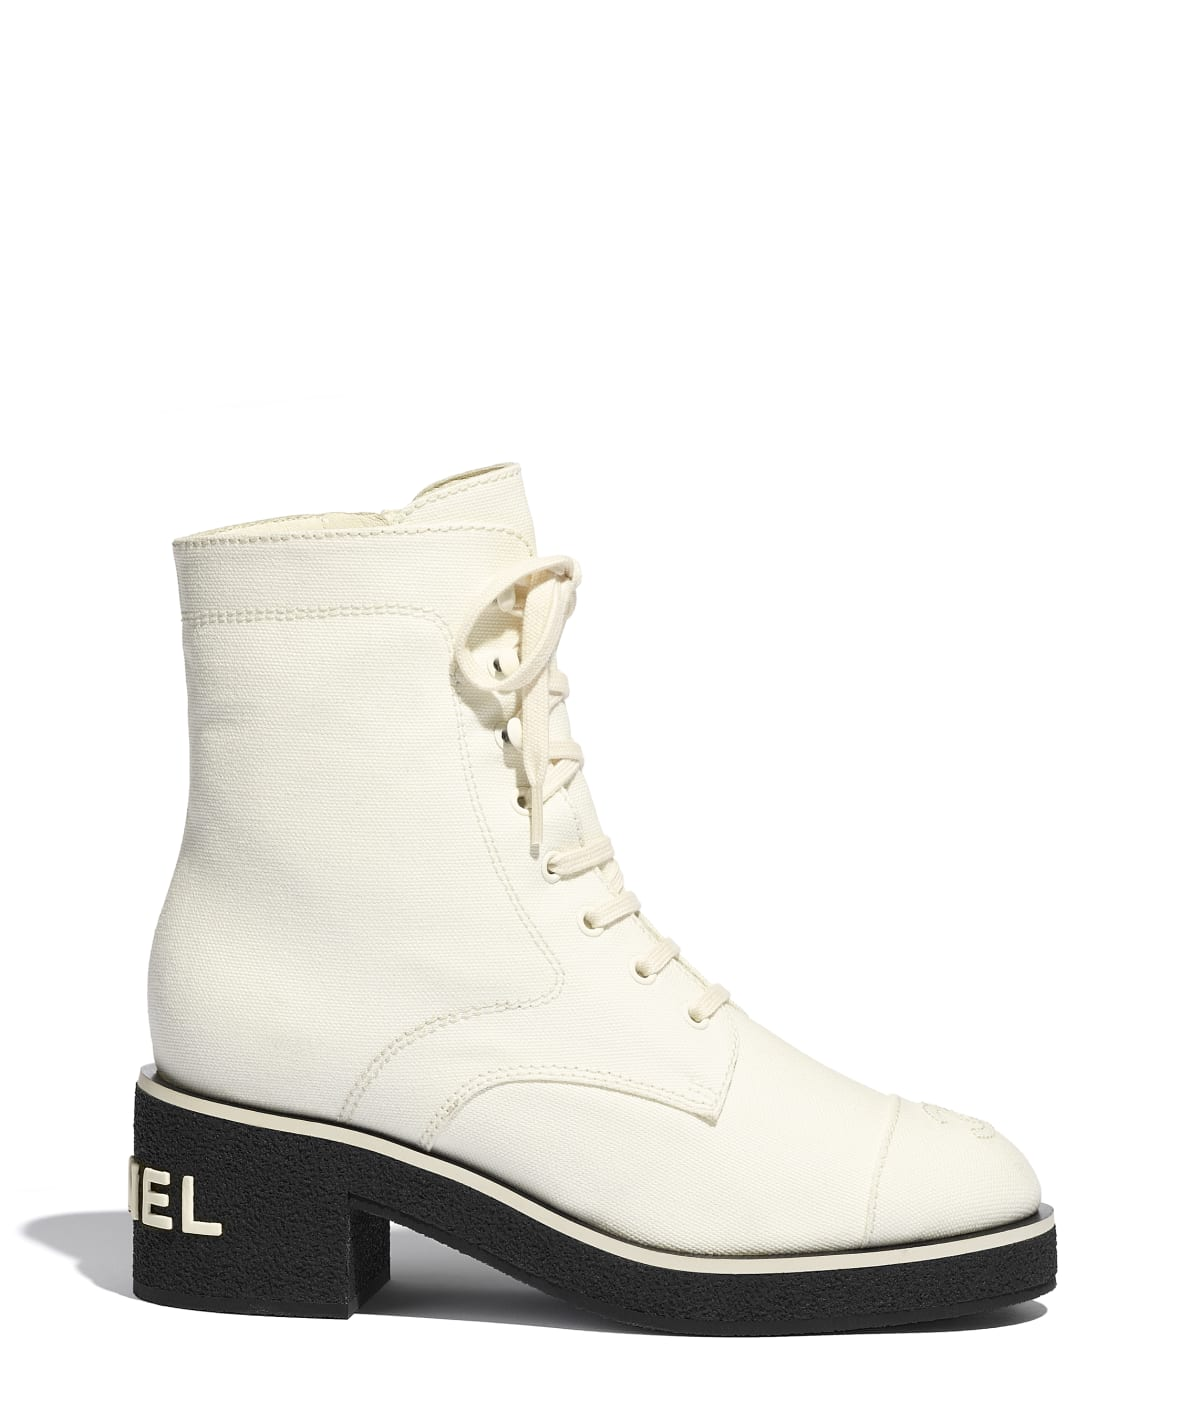 Lace-Ups, fabric, white - CHANEL